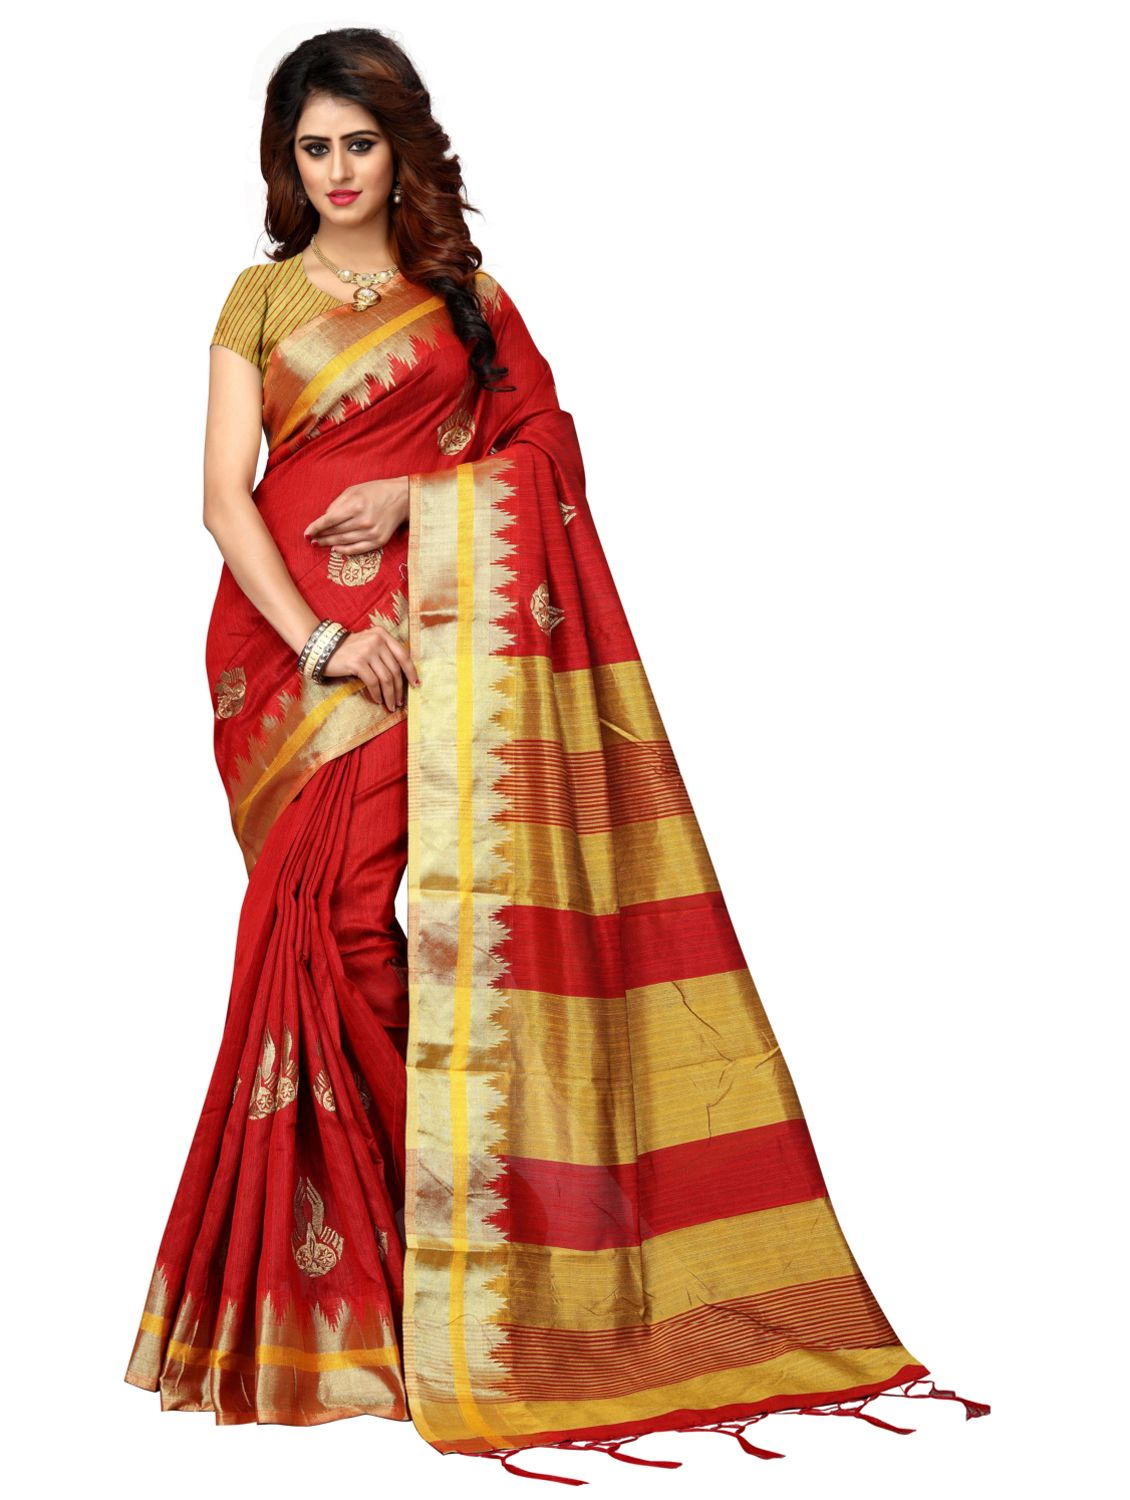 RJ Trandz Red Silk Saree